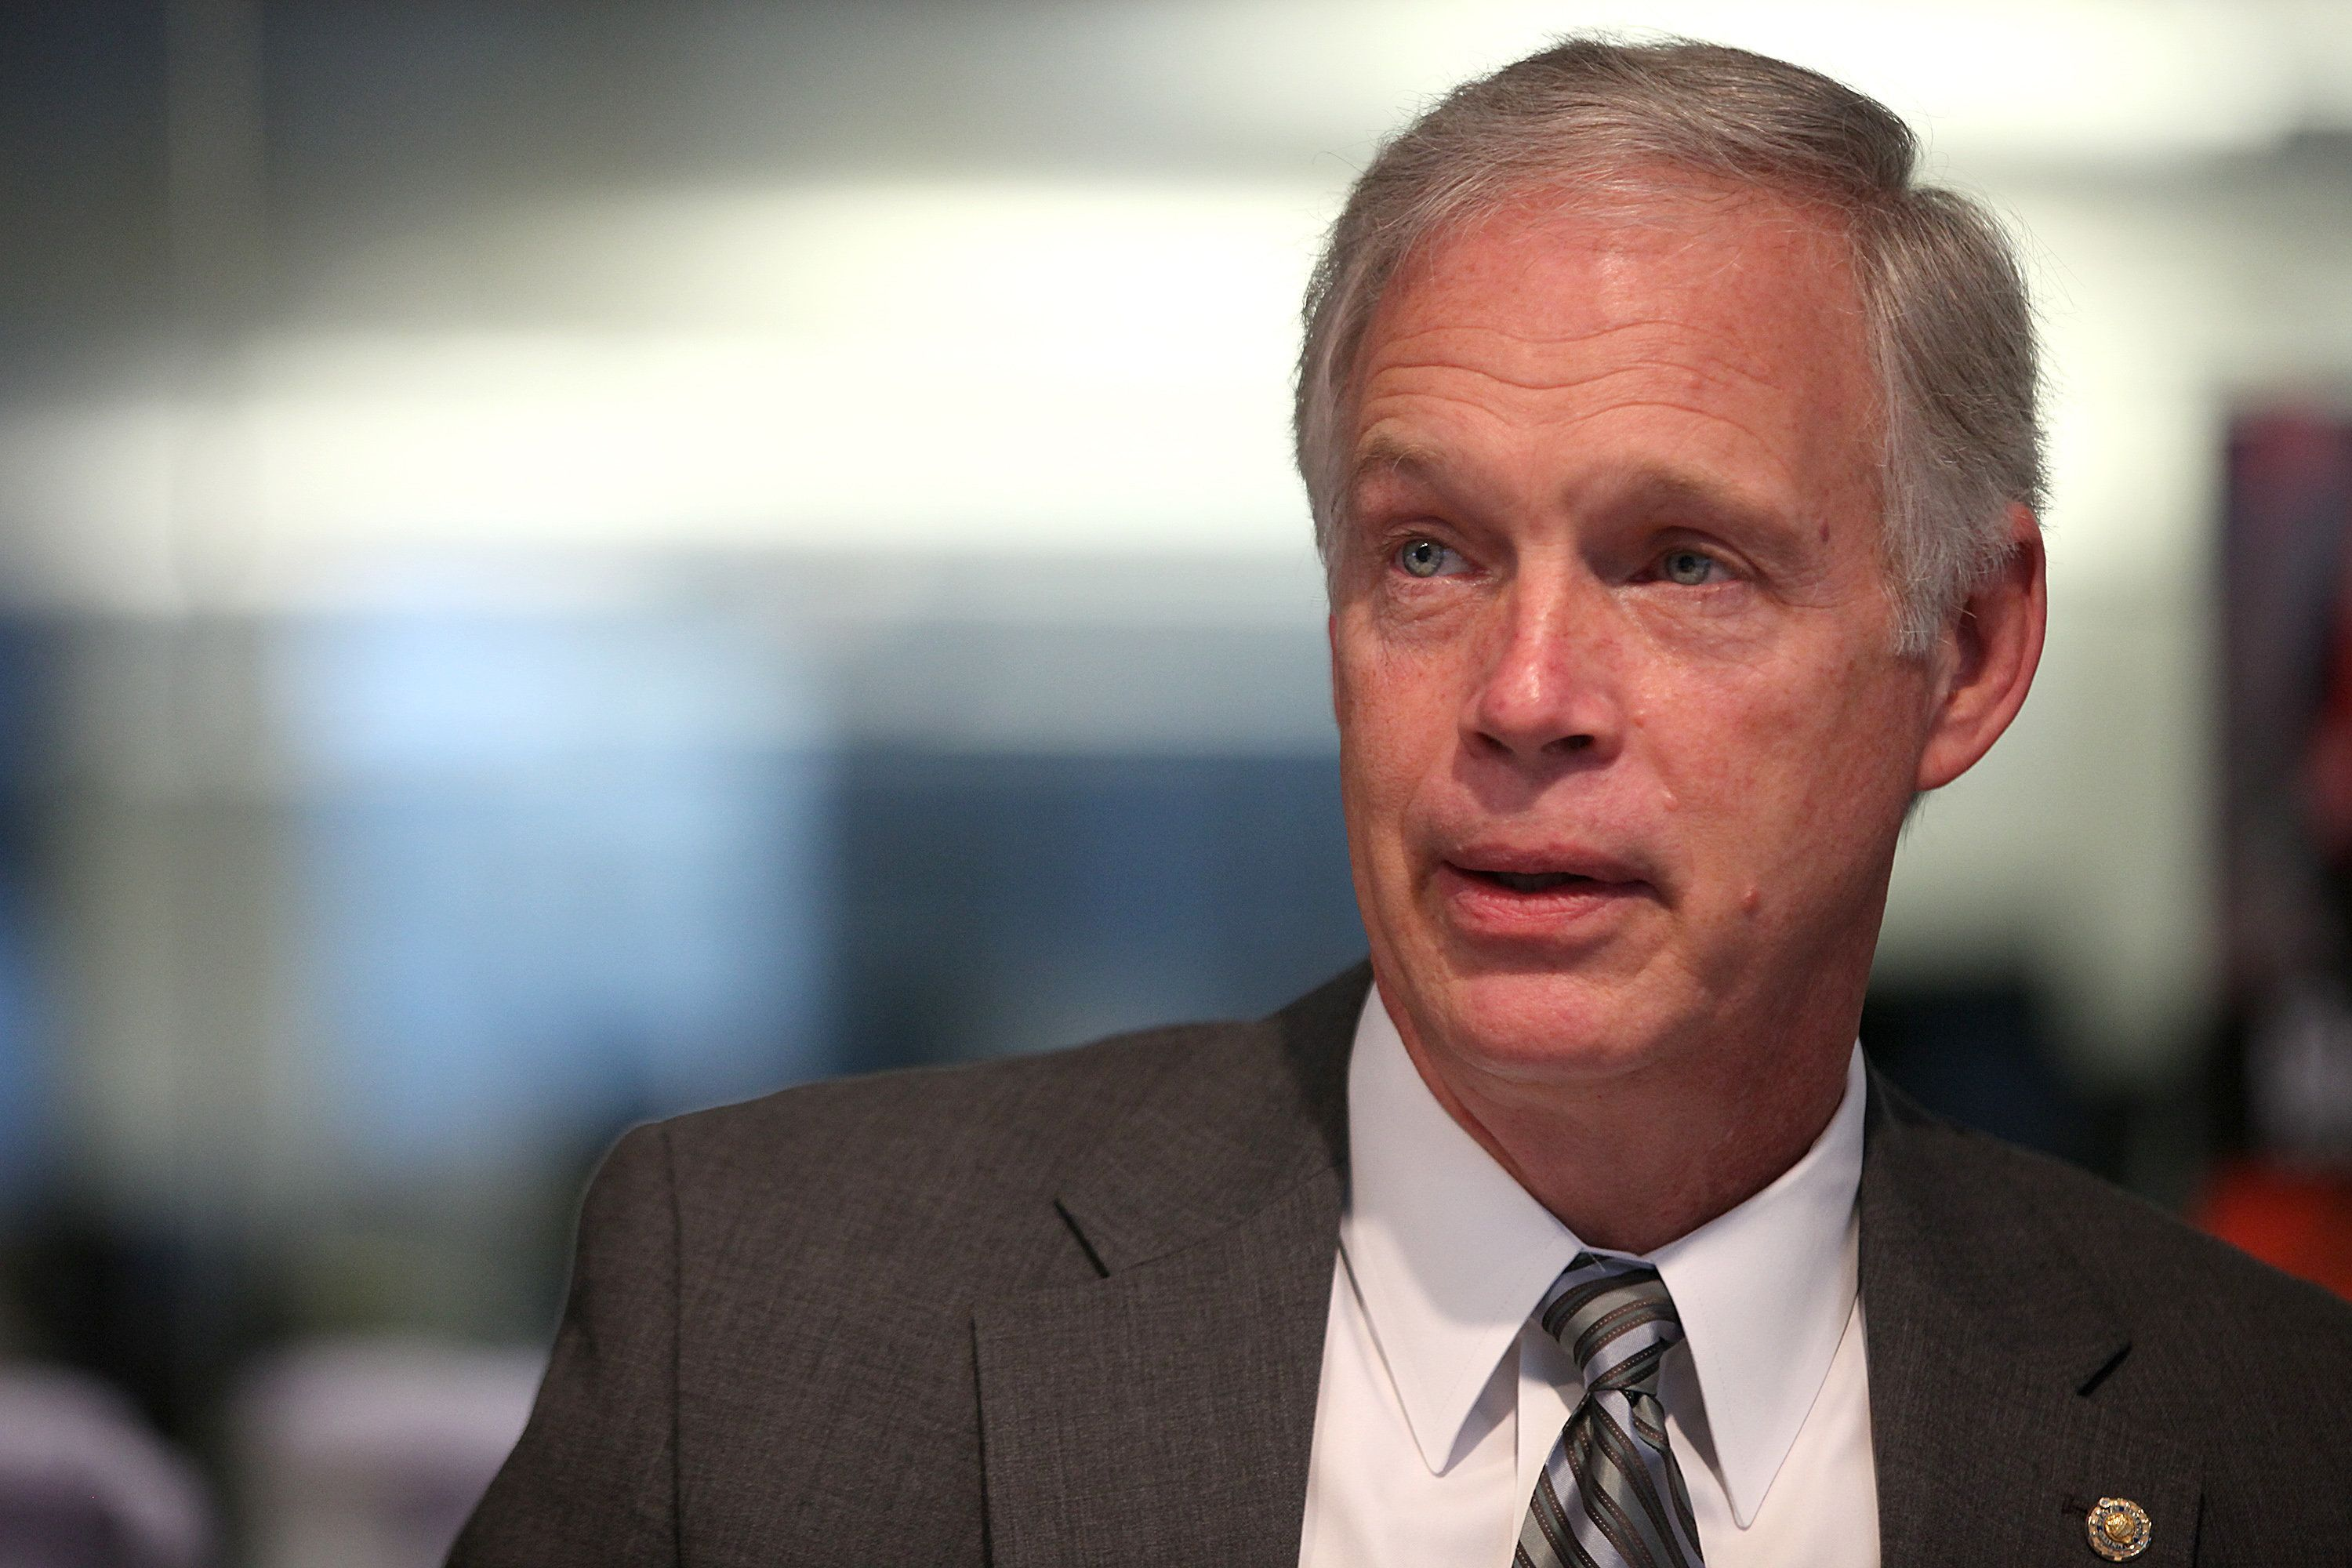 Senator Ron Johnson, a Republican from Wisconsin, speaks during an interview in Washington D.C., U.S., on Friday, Oct. 11, 2013. Johnson said at a Bloomberg breakfast today that lawmakers were using the debt ceiling for leverage because 'how else can you get those people -- the president, Democrats in the Senate and the House -- to come to the table and start working with you in good faith to solve a long-term problem?' Photographer: Julia Schmalz/Bloomberg via Getty Images